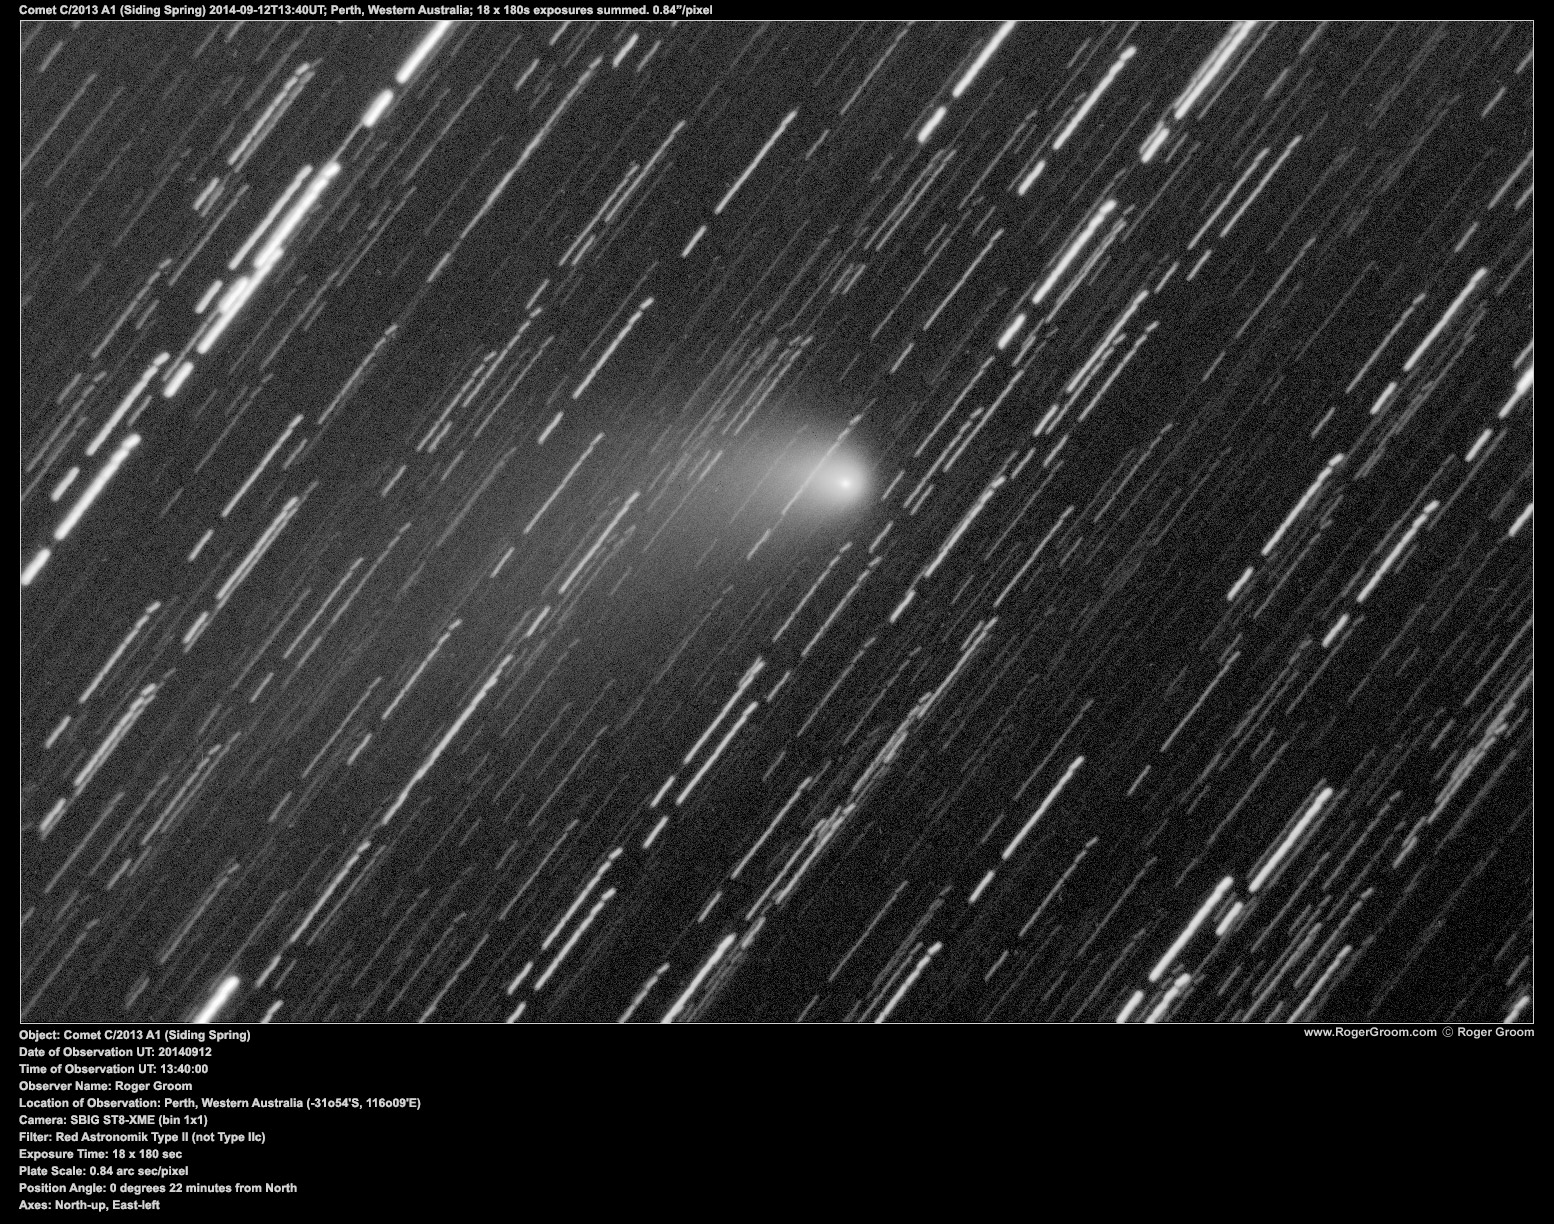 Object: Comet C/2013 A1 (Siding Spring) Date of Observation UT: 20140912 Time of Observation UT: 13:40:00 Observer Name: Roger Groom Location of Observation: Perth, Western Australia (-31o54'S, 116o09'E) Camera: SBIG ST8-XME (bin 1x1) Filter: Red Astronomik Type II (not Type IIc) Exposure Time: 18 x 180 sec Plate Scale: 0.84 arc sec/pixel Position Angle: 0 degrees 22 minutes from North Axes: North-up, East-left